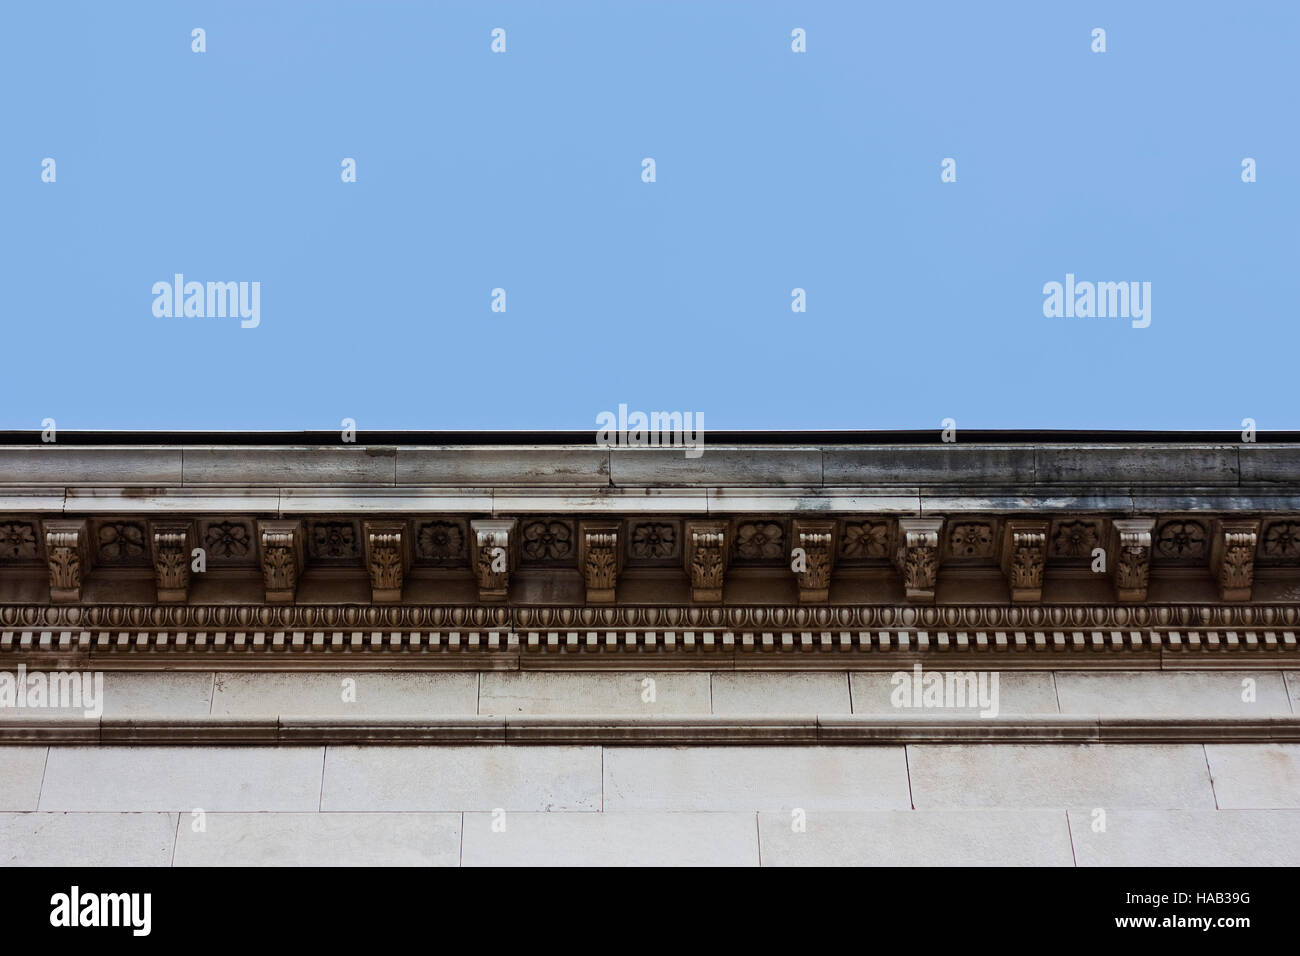 Detail of cullis cornice decoration with ornaments - Stock Image